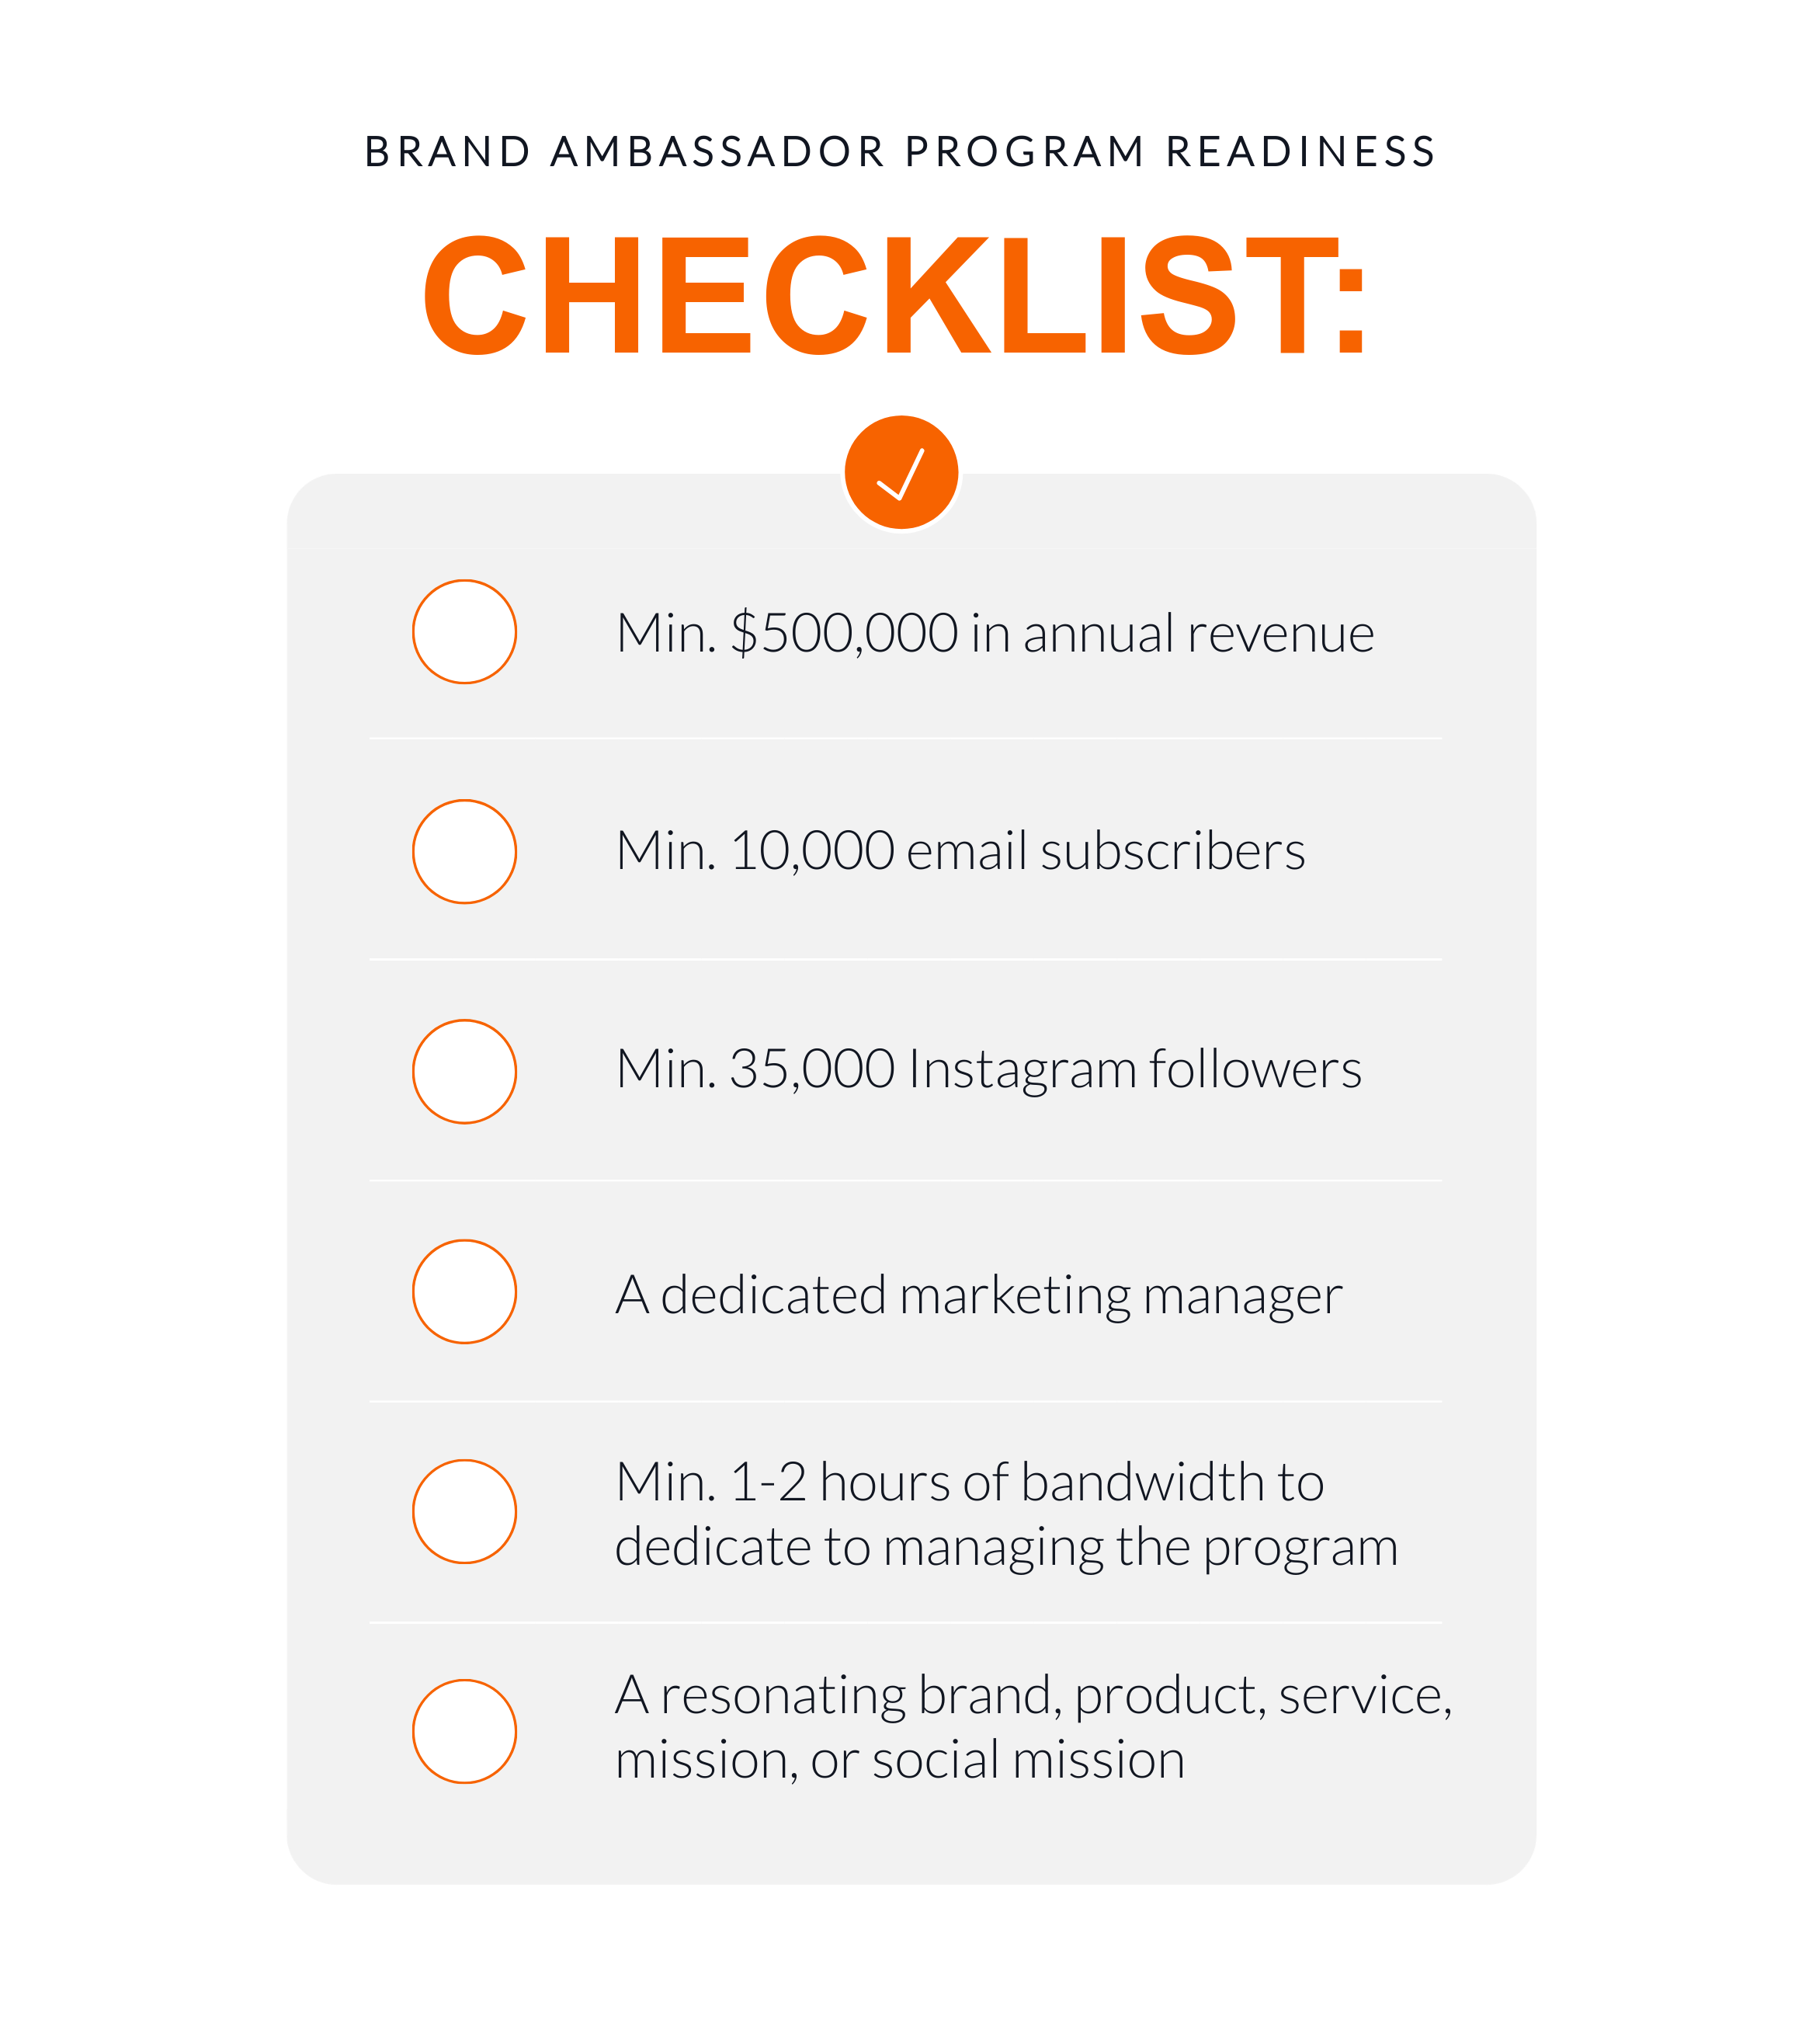 Image of the brand ambassador program readiness checklist